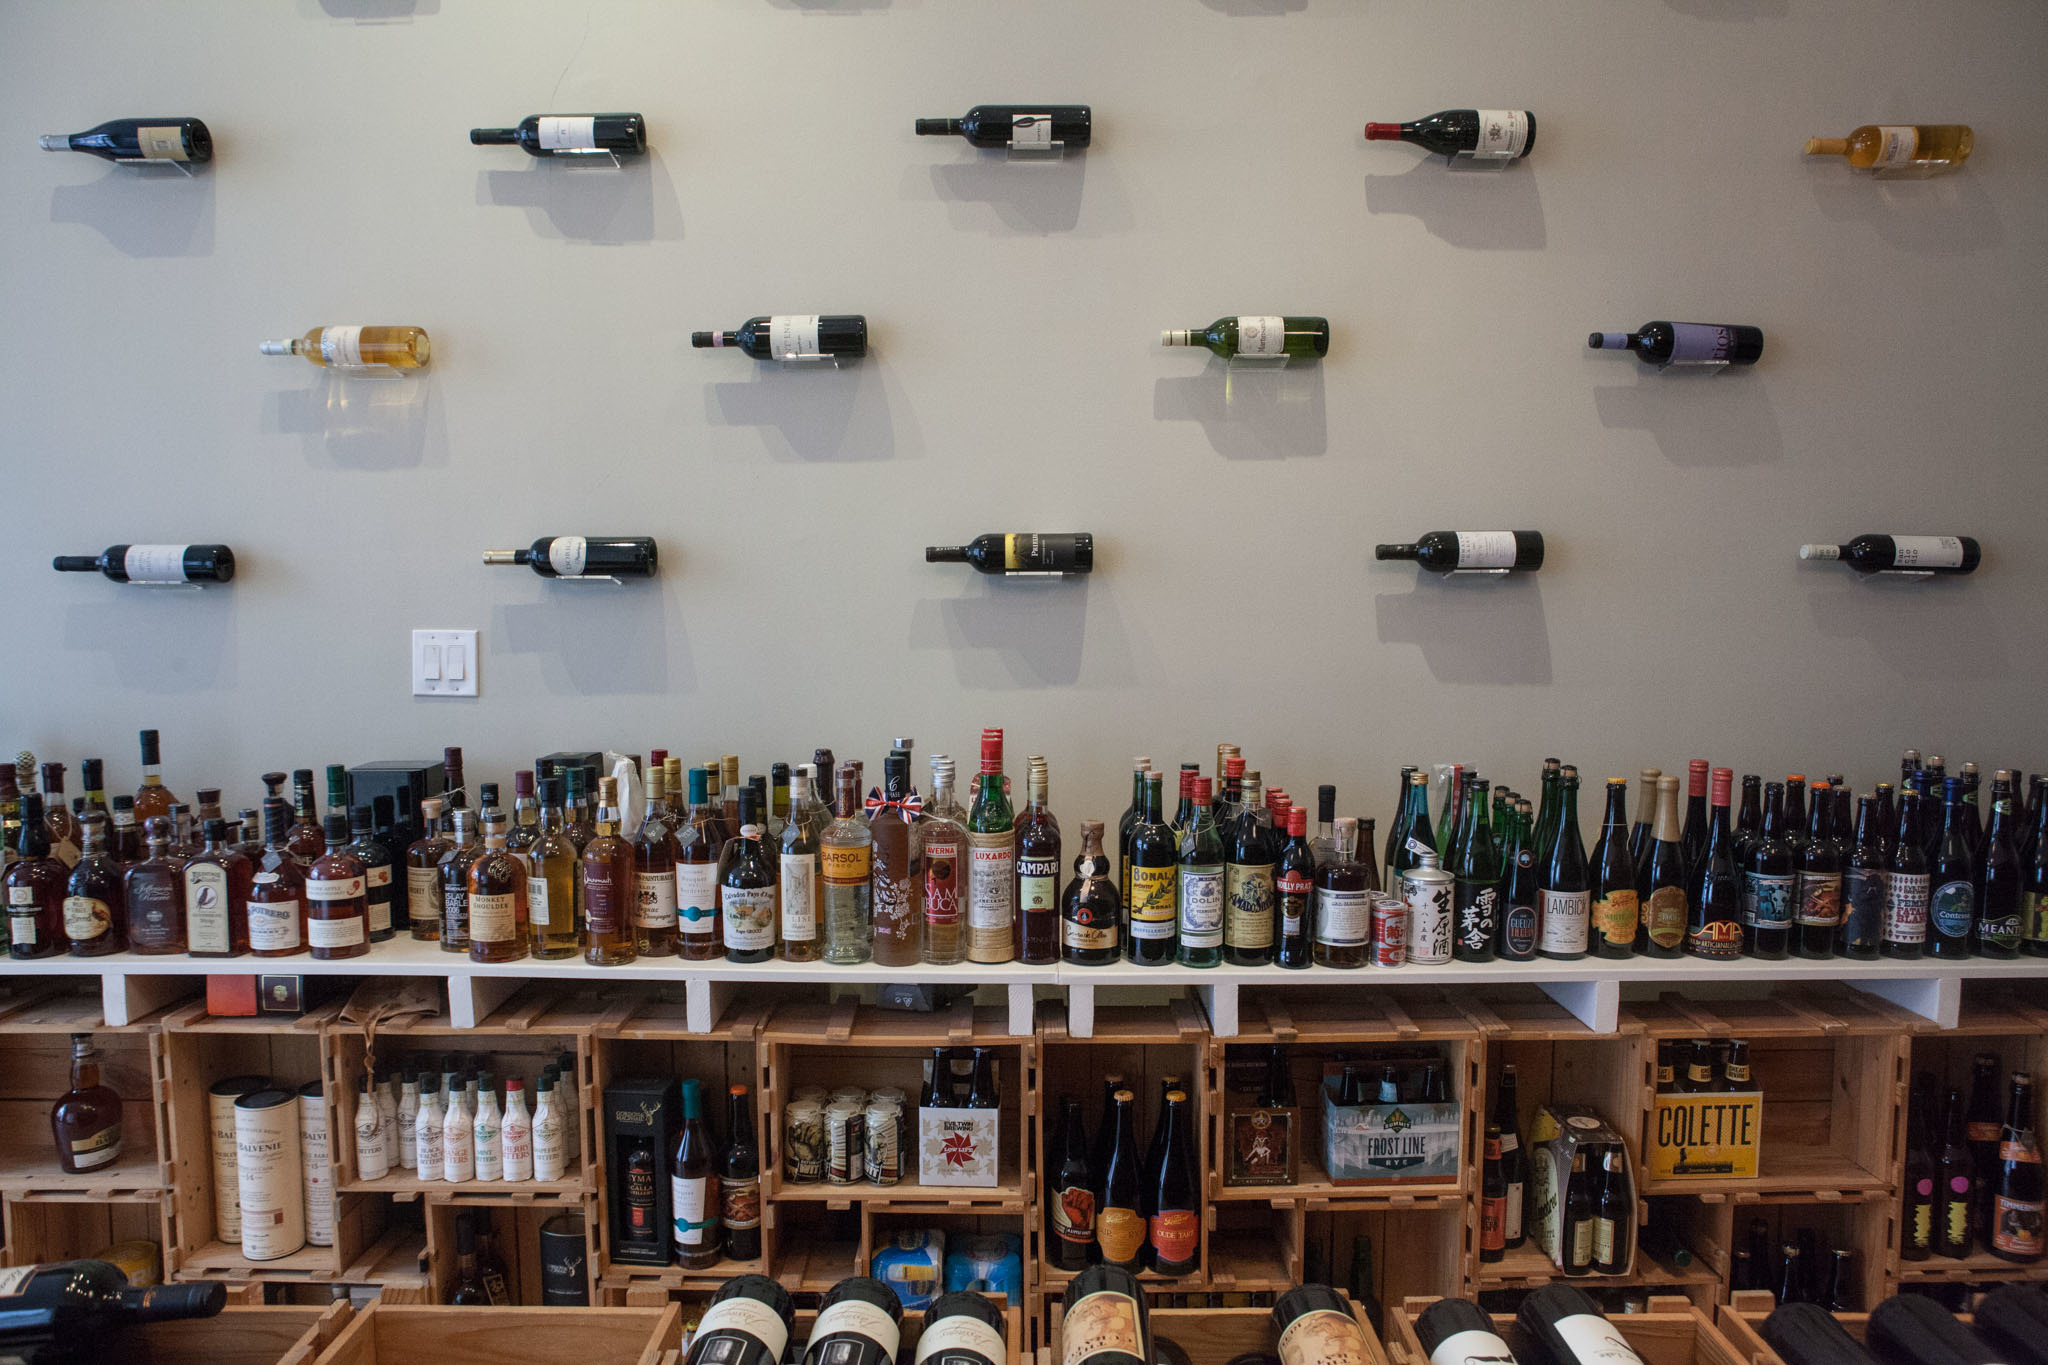 Perman Wine Selections is located at 802 W. Washington Blvd.